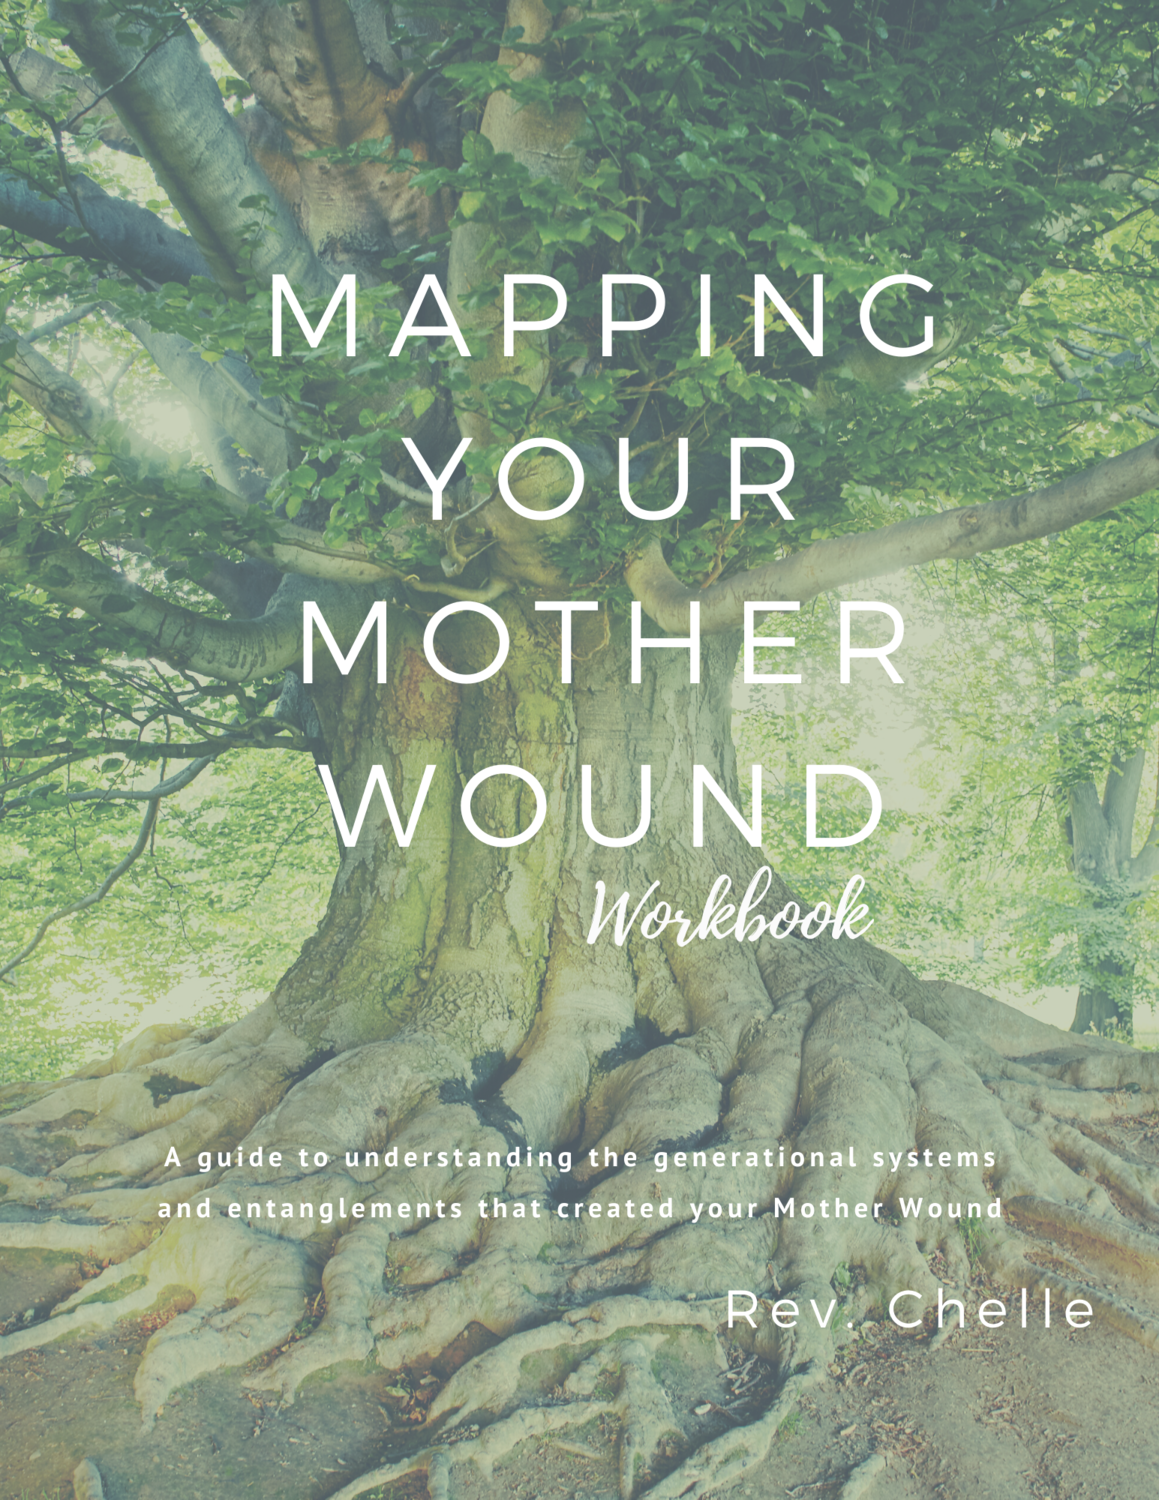 Workbook - Mapping Your Mother Wound